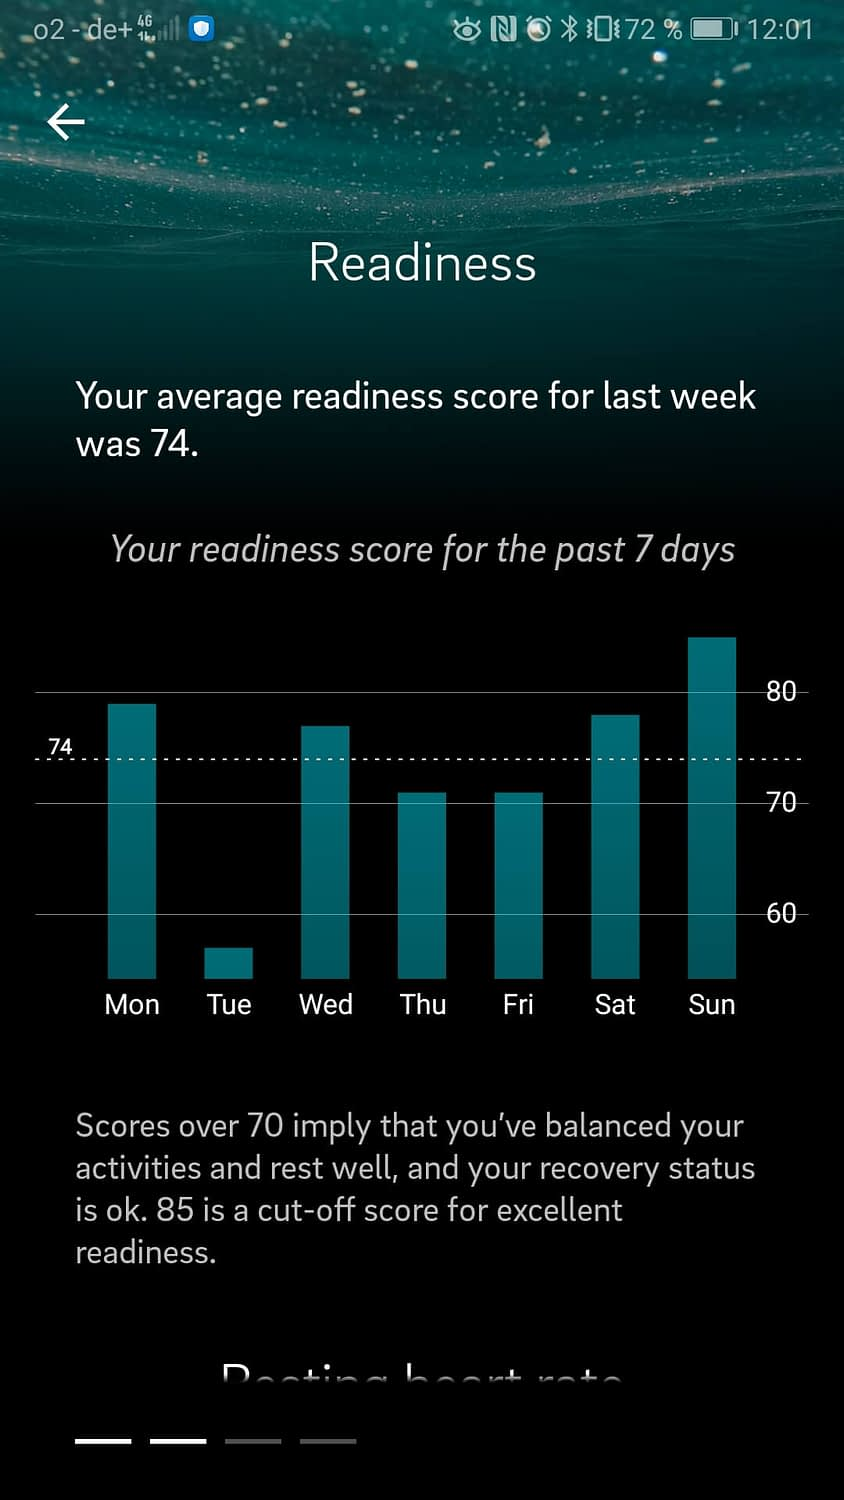 Oura-Ring-App-Readiness-Score-Auswertung